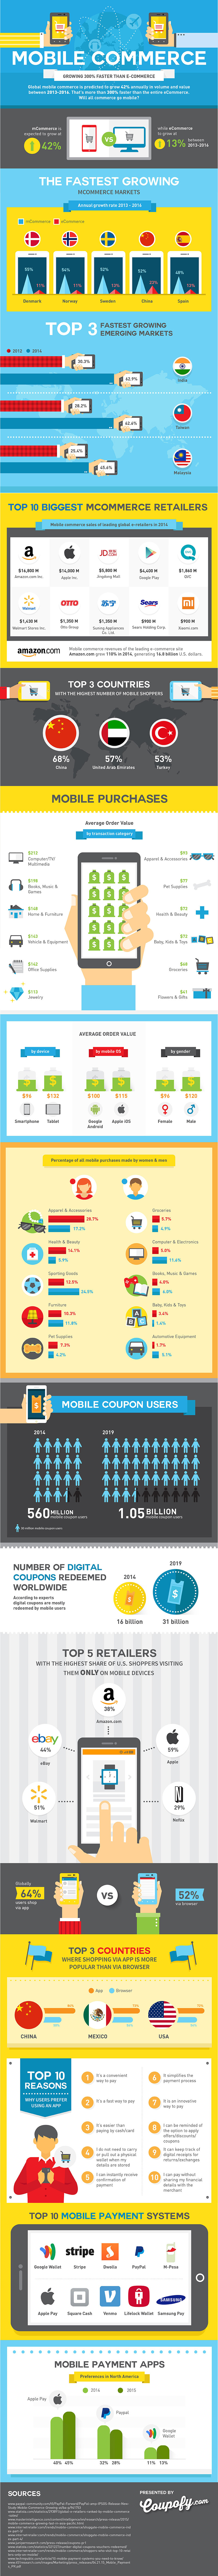 Mobile Commerce Growing 300% Faster Than Ecommerce